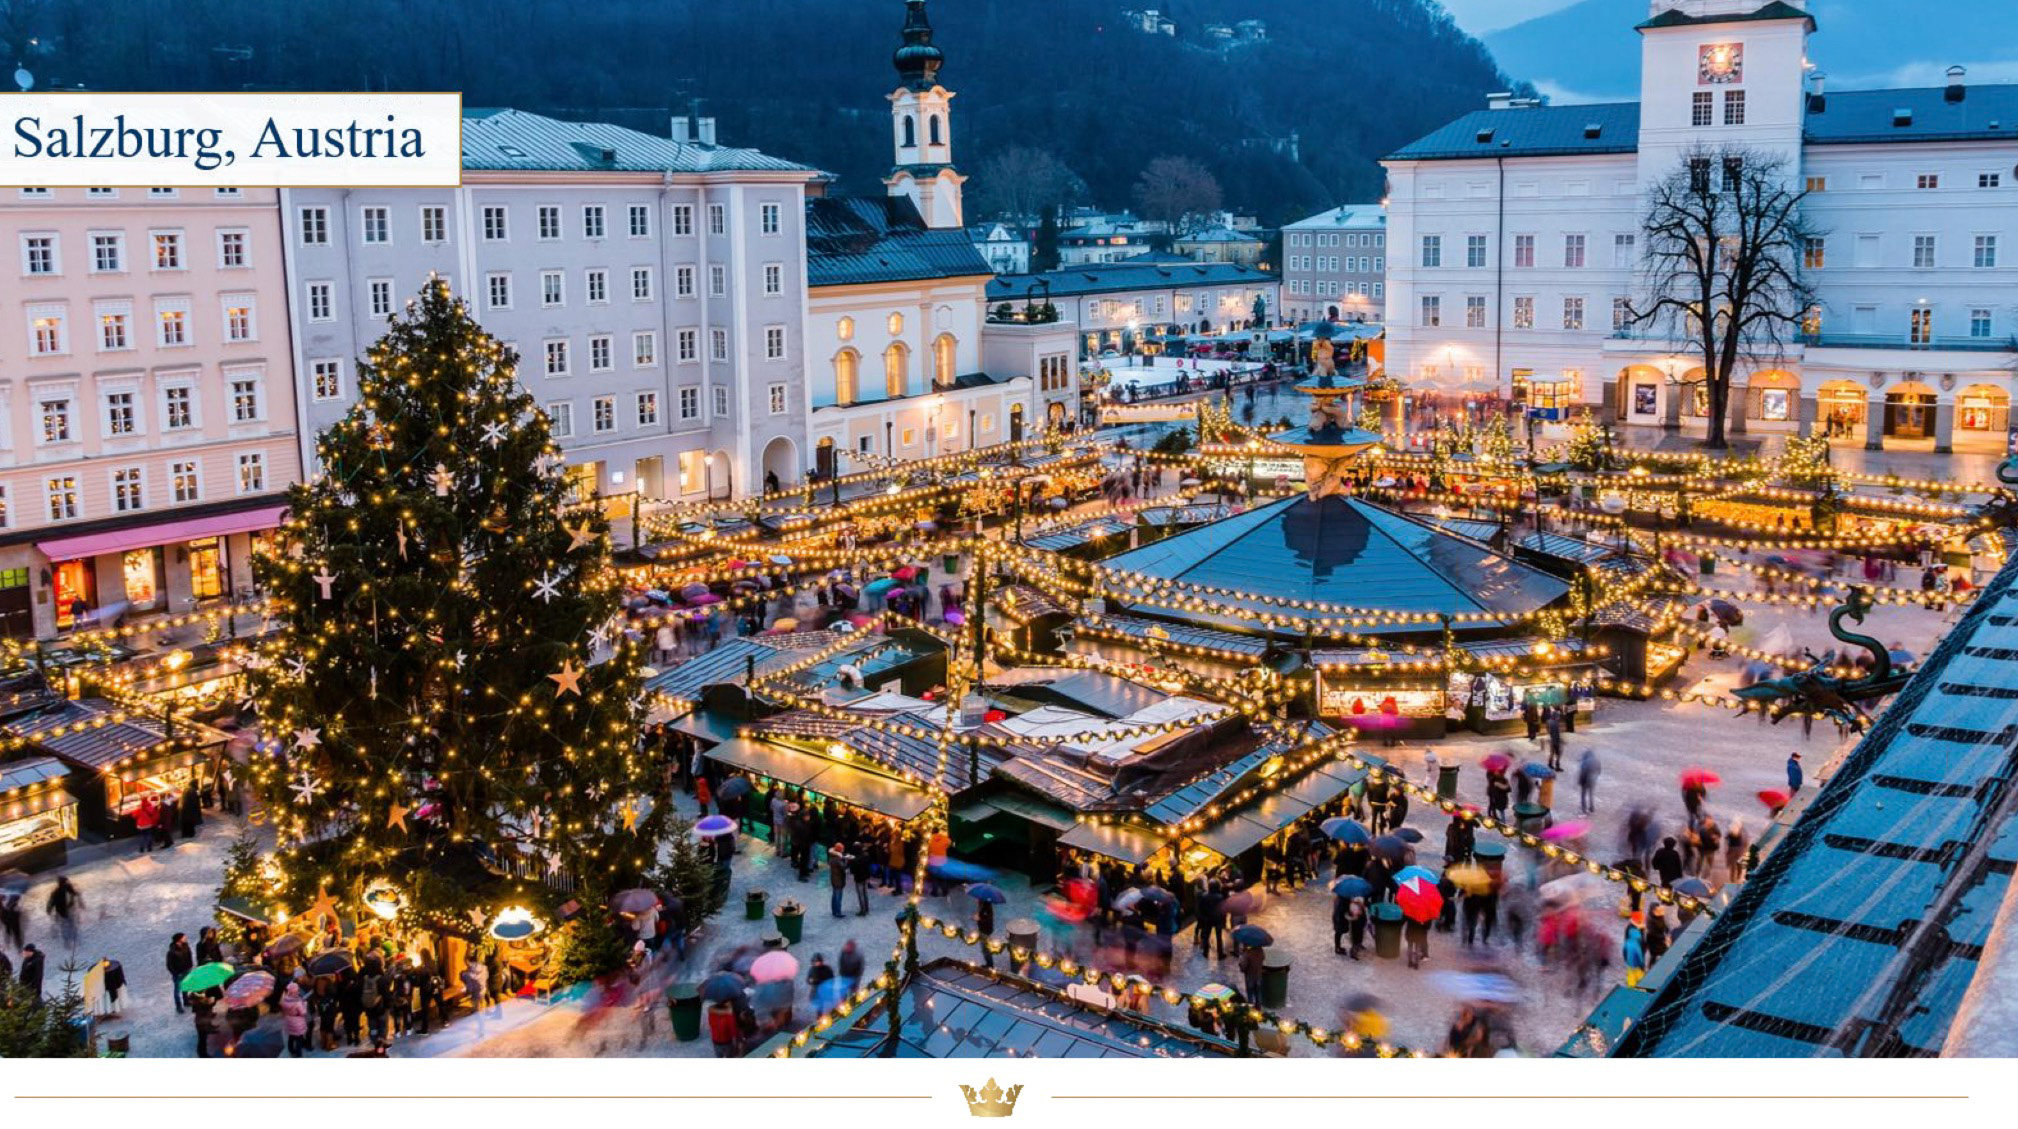 Christmas Market in Salzburg, Austria, a UNESCO-designated old town with a magnificent cathedral and the Alps as its backdrop.